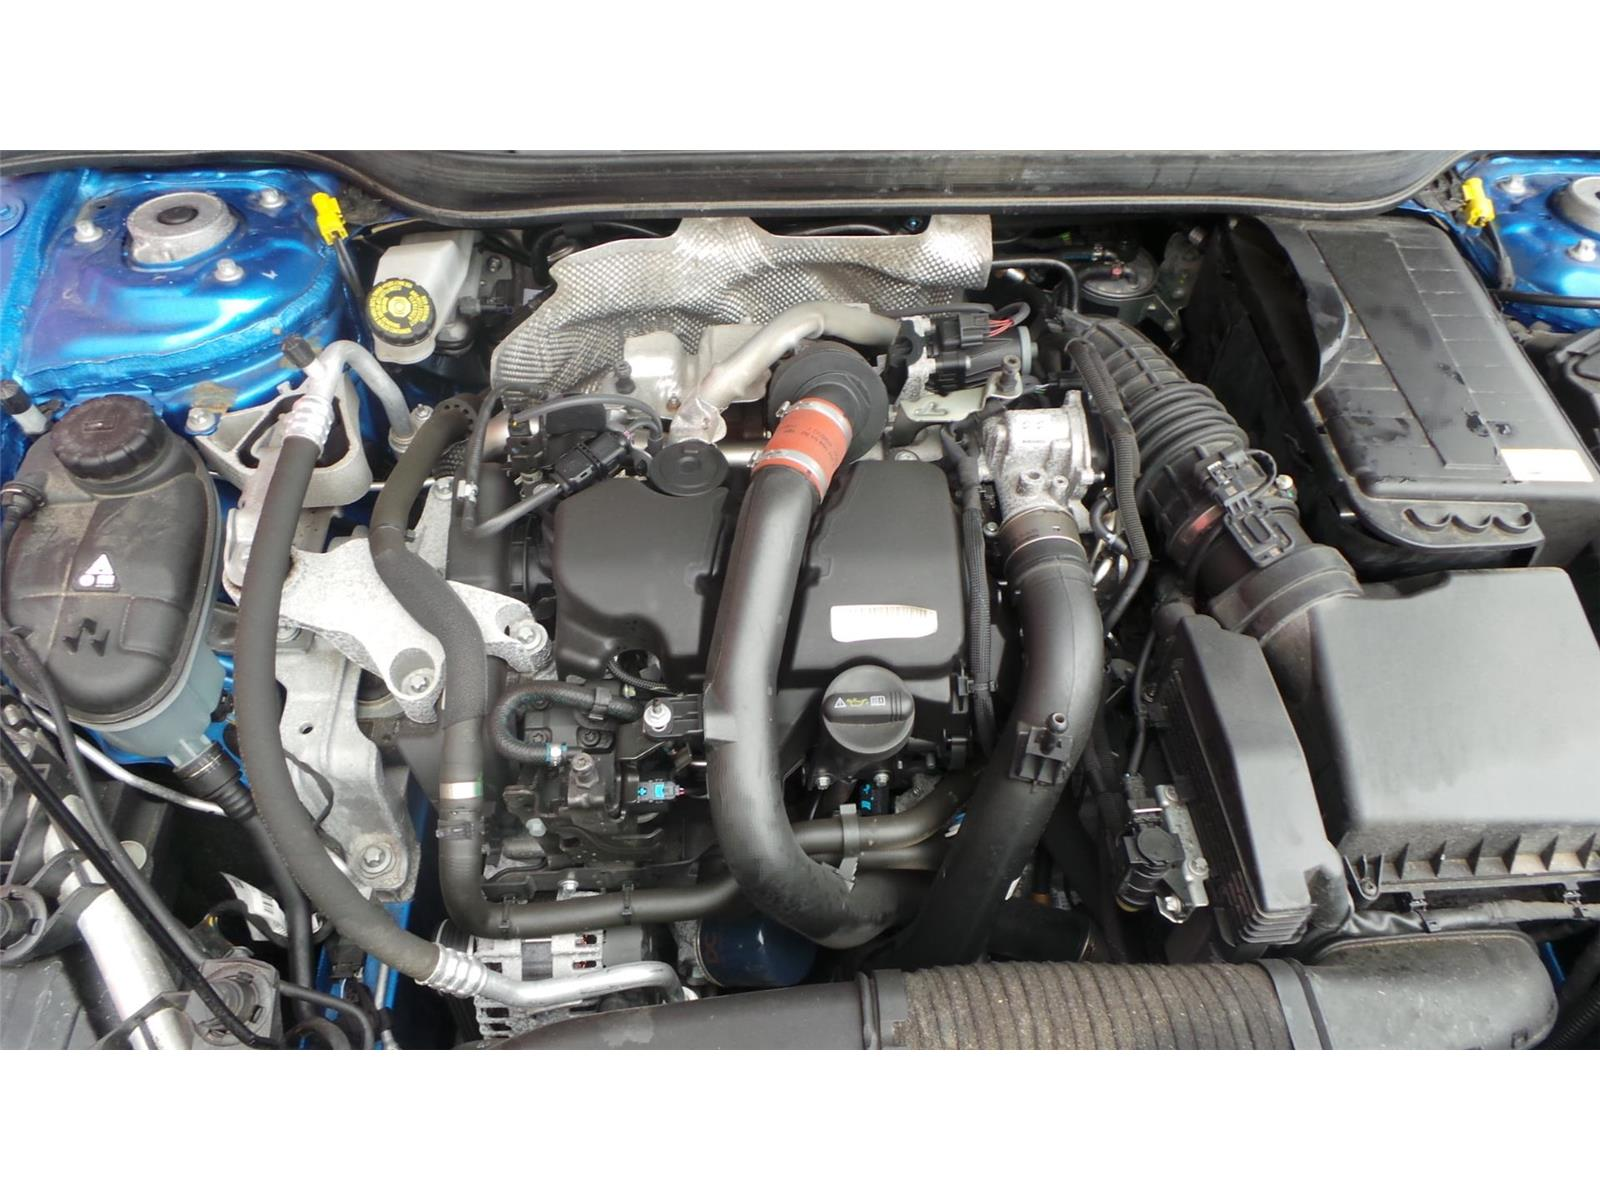 class mercedes diesel benz engines wallpaper m images engine cars